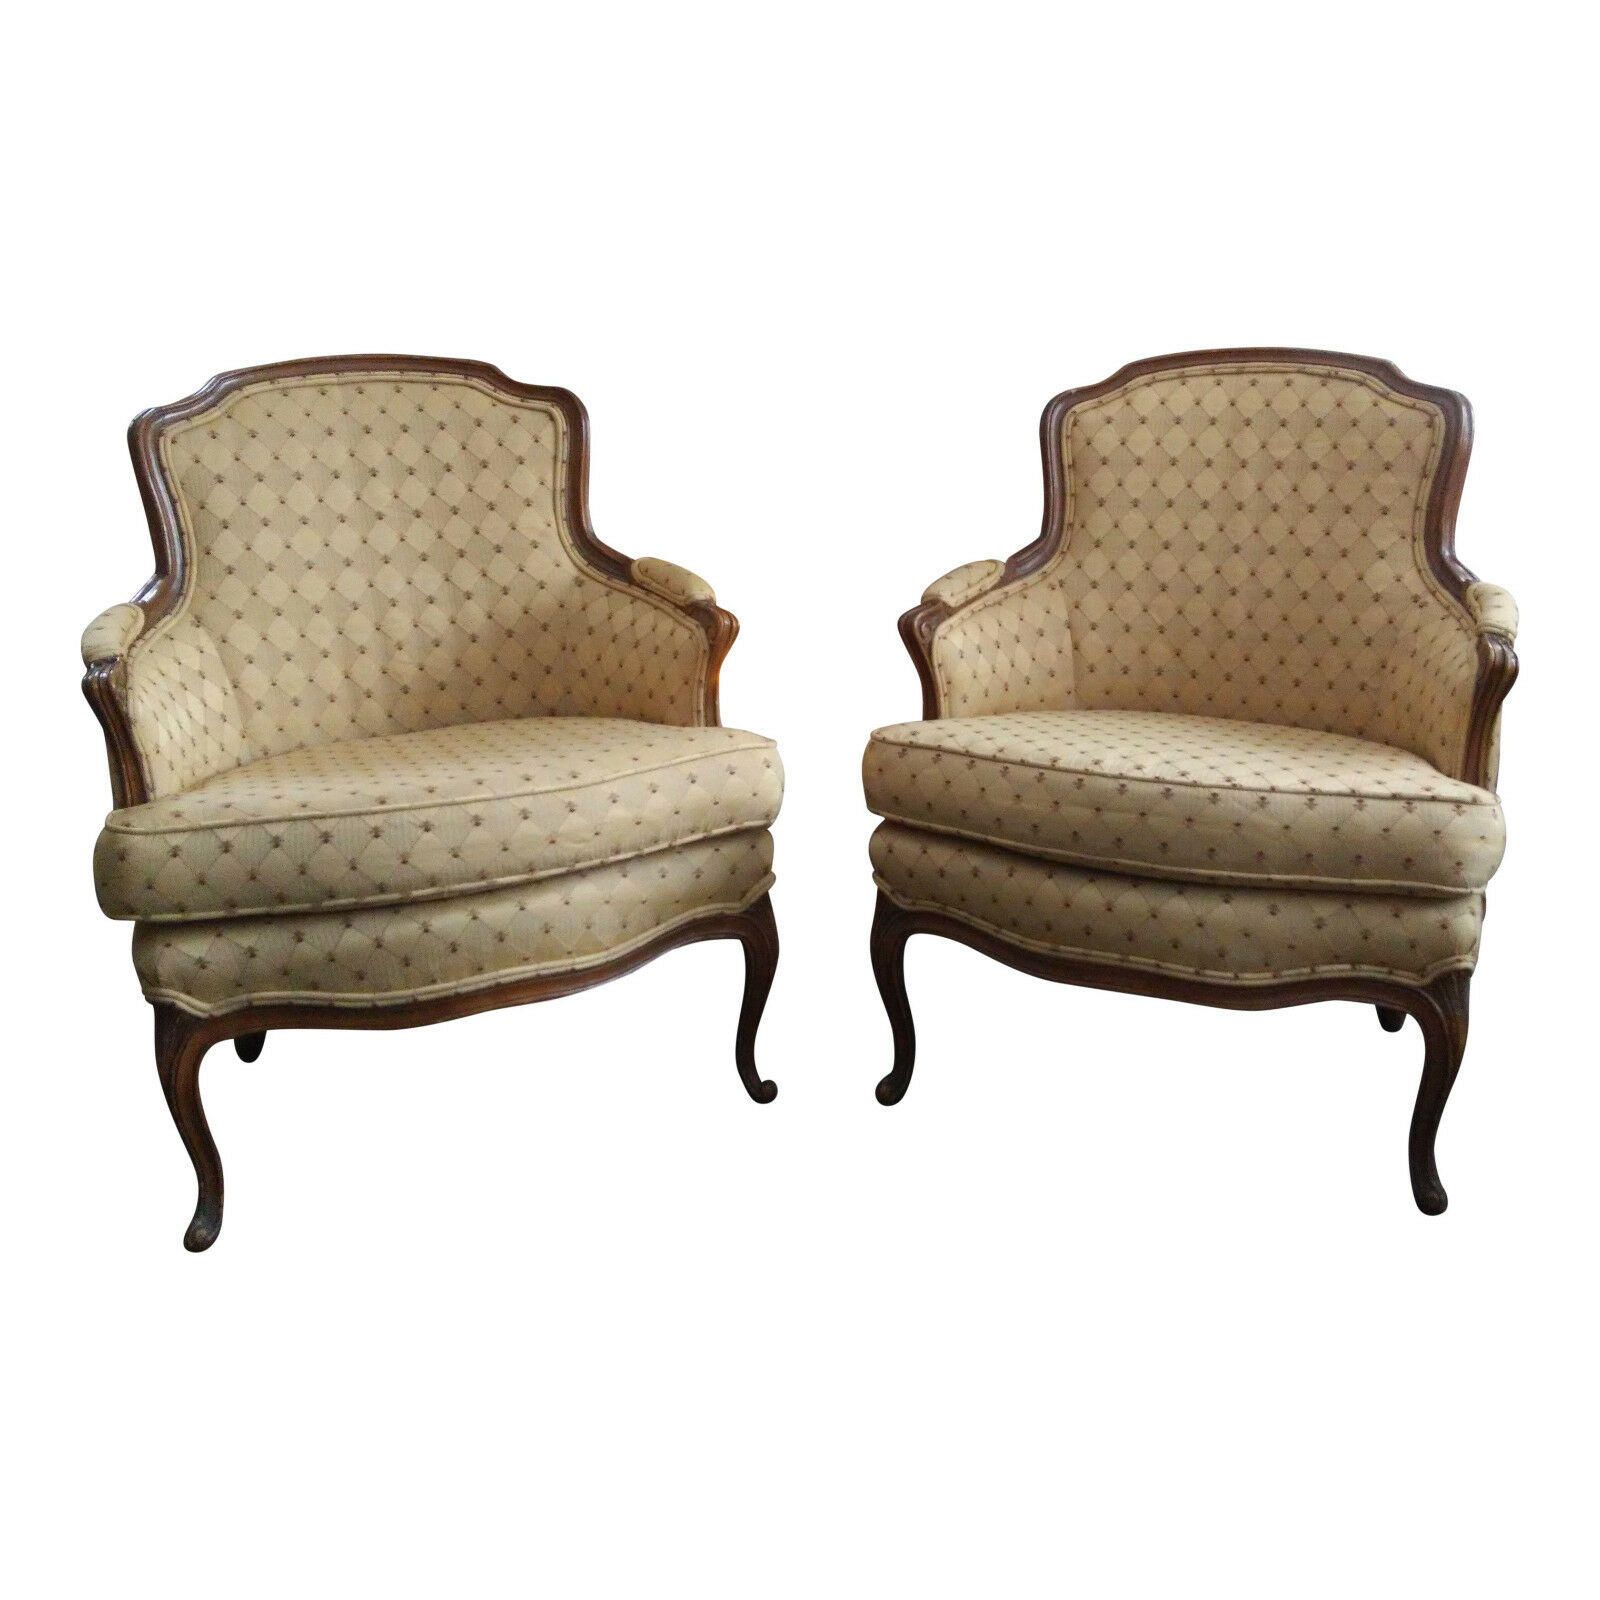 Pair Of French Louis XIV Style Upholstered Bergere Chairs